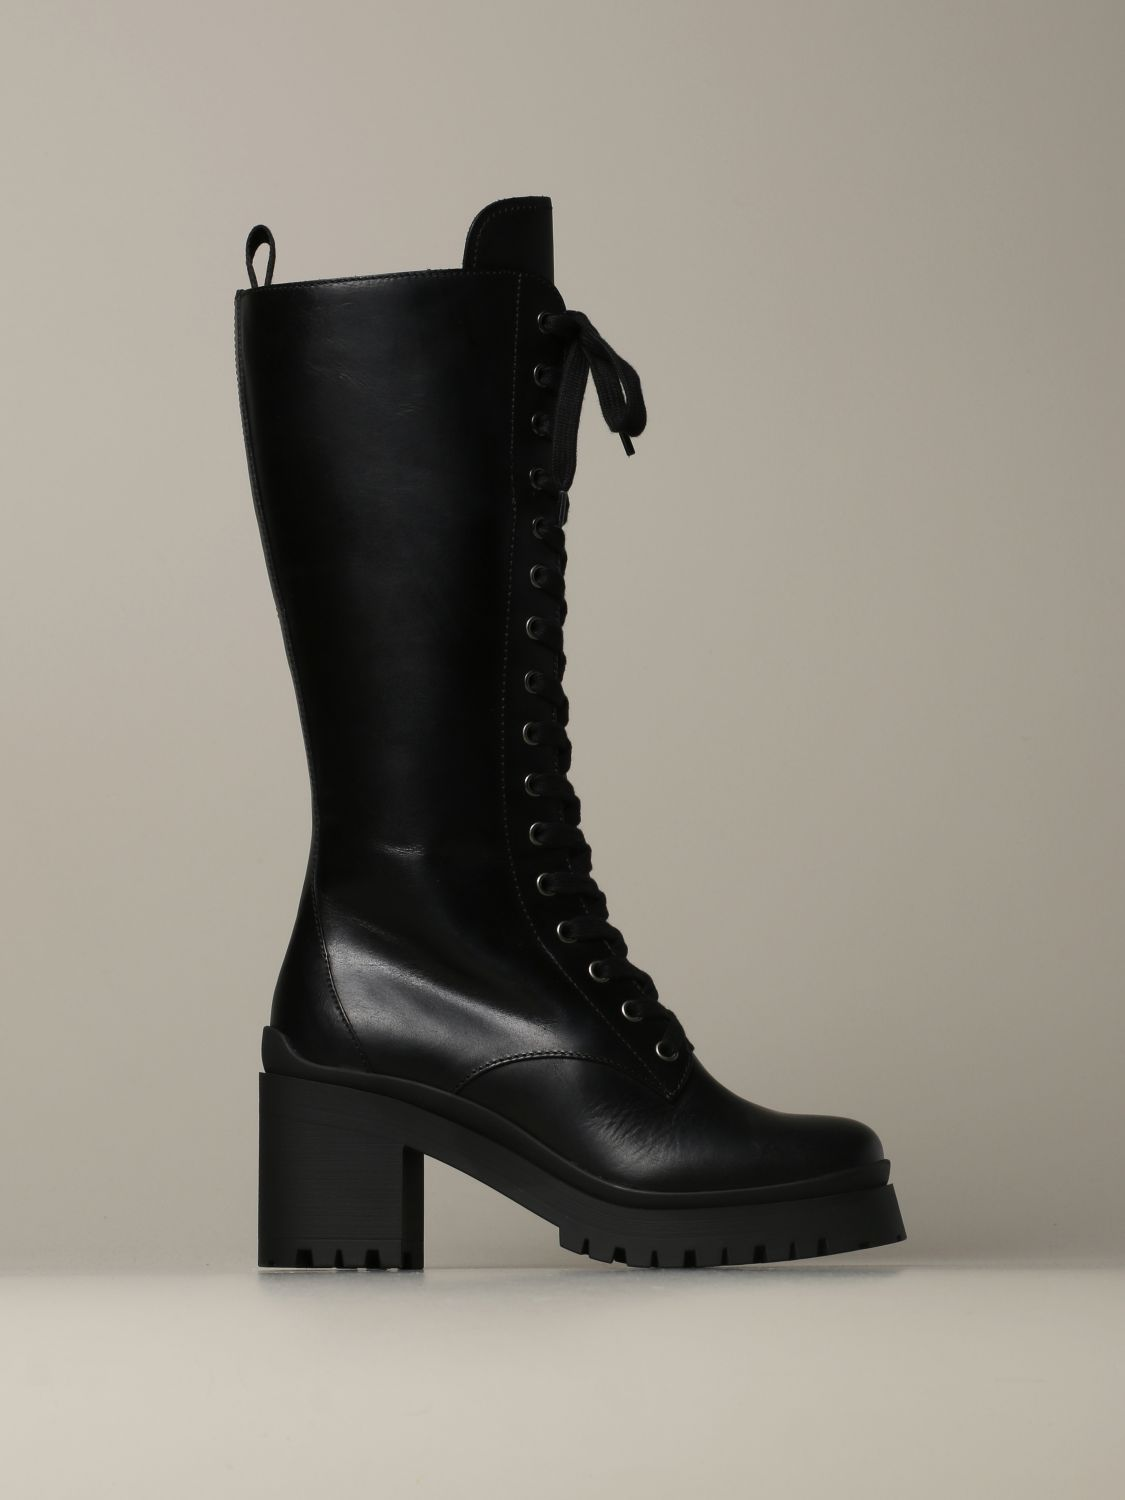 Combact Miu Miu lace-up boot in leather